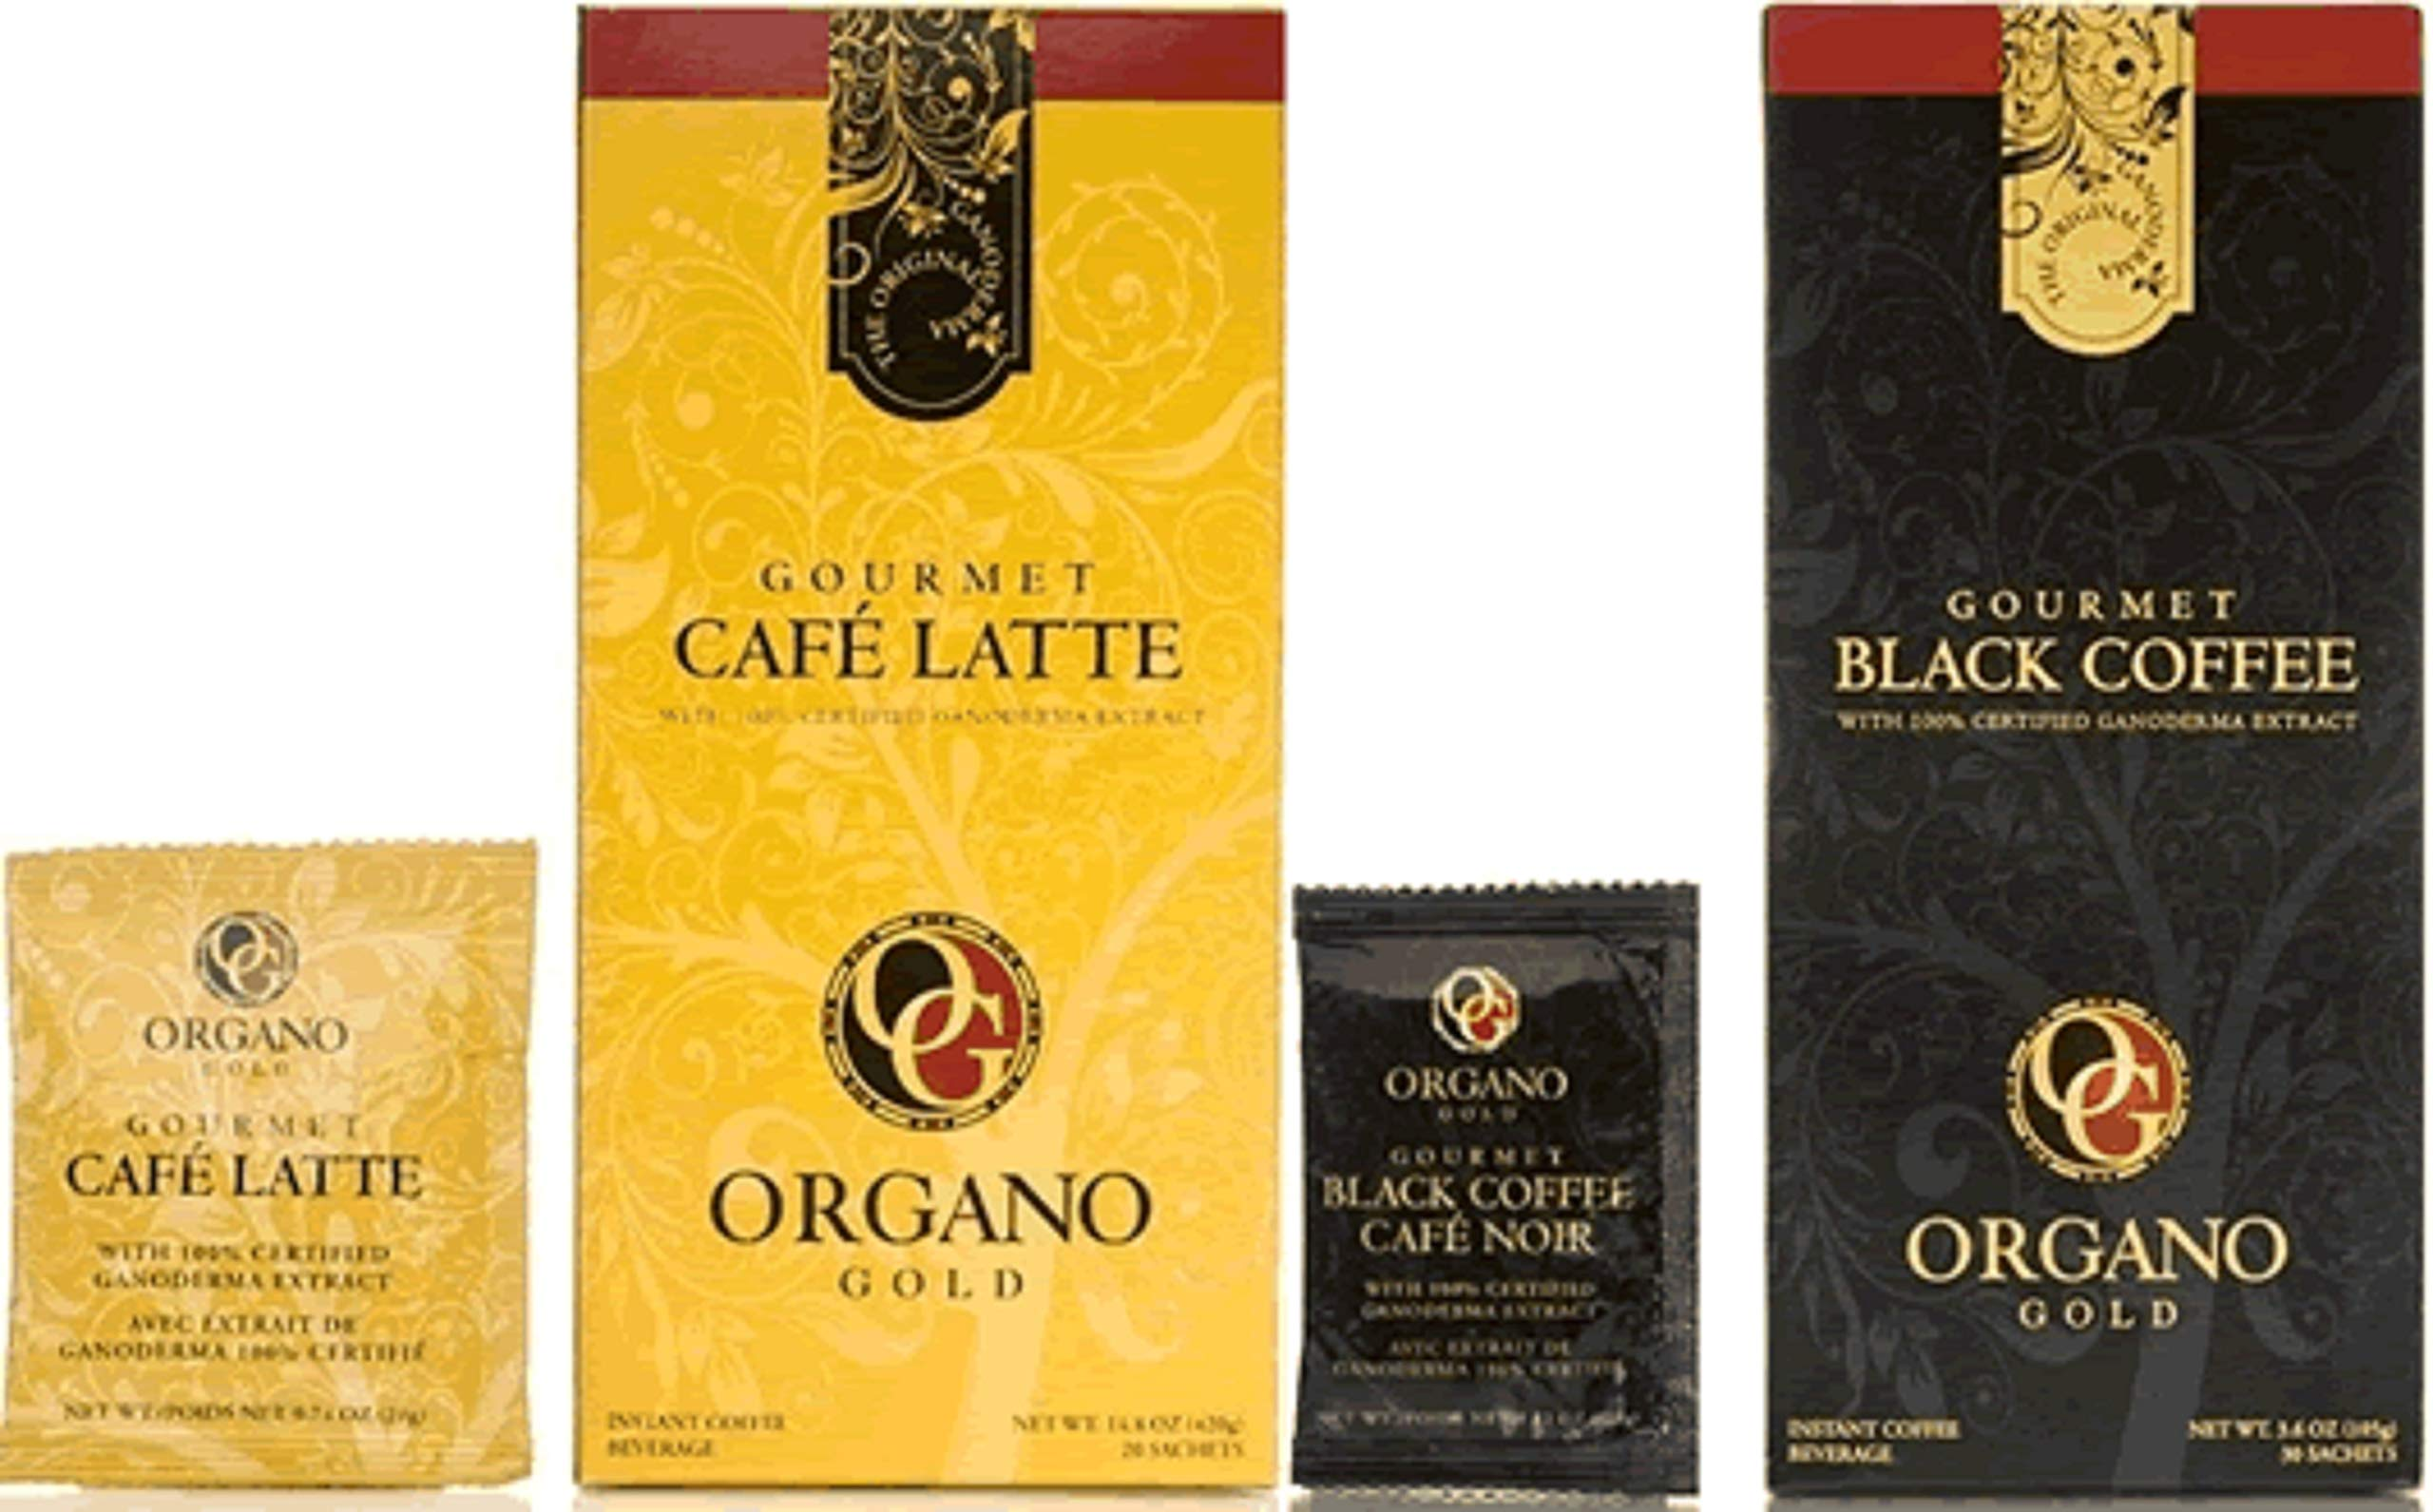 Organo Gold Combo Pack 1 Box Black Coffee And 1 Box Cafe Latte 100% Cetified Organic Gourmet Coffee by Organo Gold